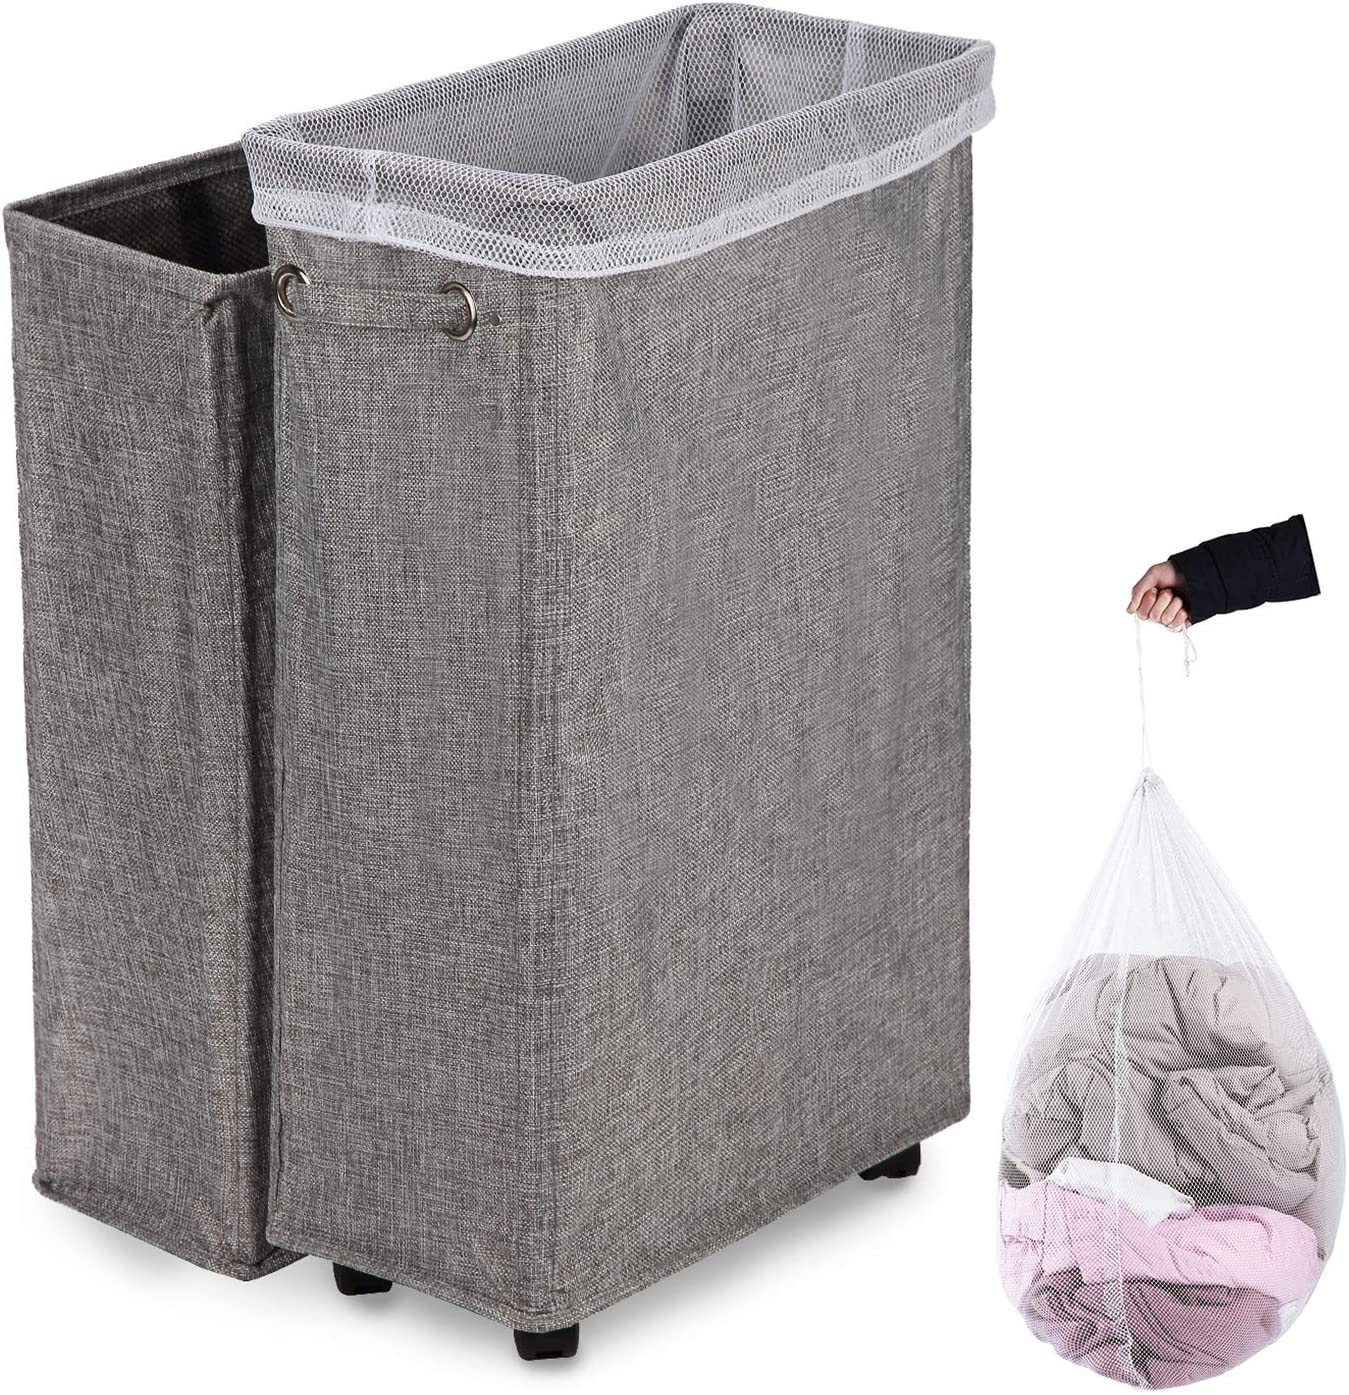 "Caroeas Laundry Hamper, 27"" Burlap Rolling Laundry Hamper Collapsible Tall & Slim Laundry Basket with Breathable Wash Bag Waterproof & Dustproof Laundry Cart on Wheels (Grey Linen)"